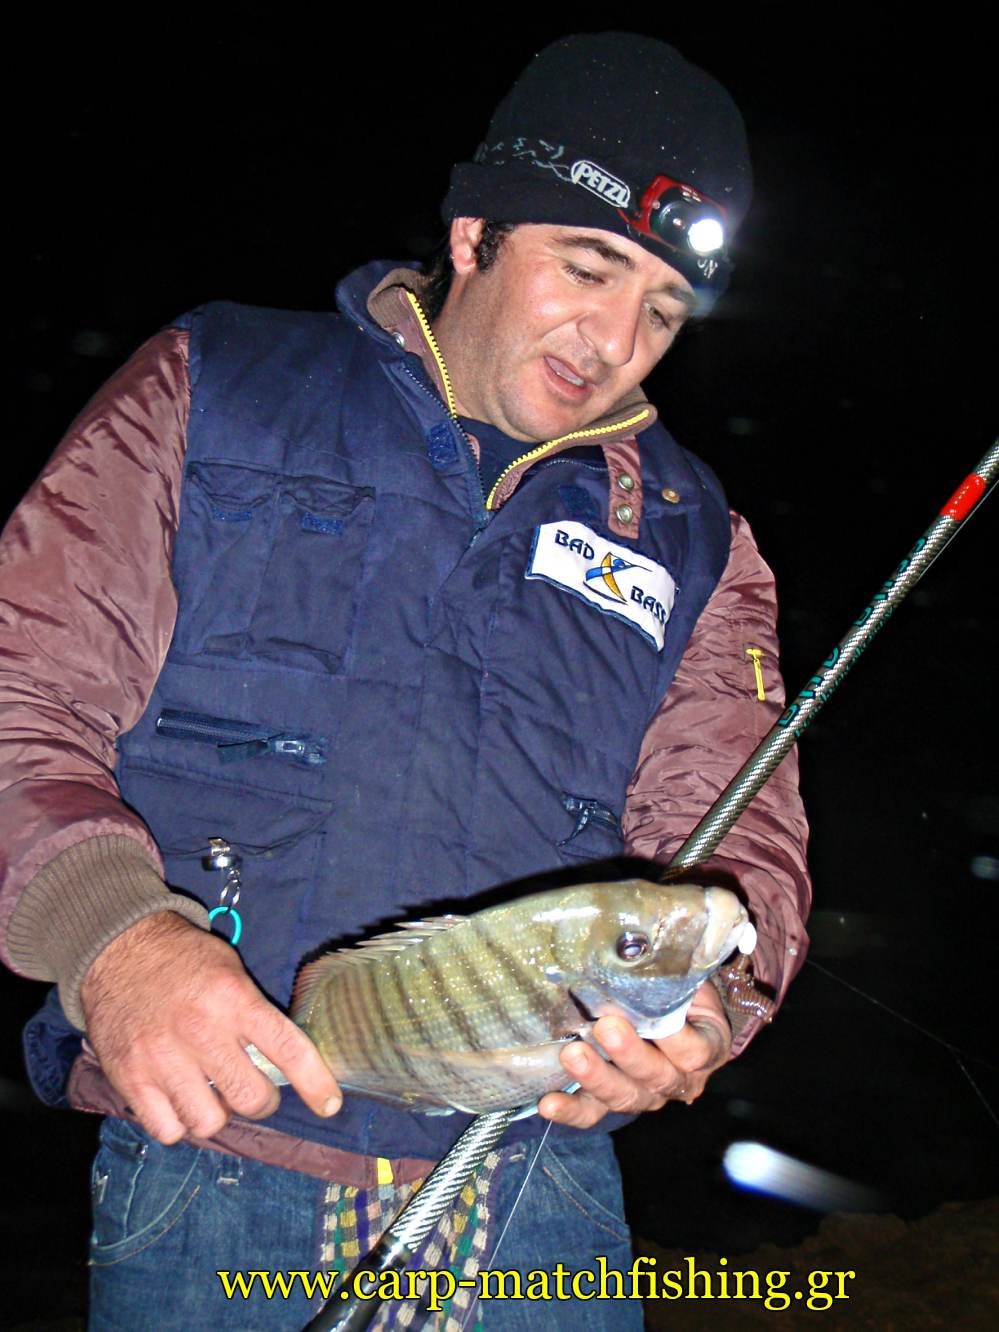 rock-fishing-sargos-fish-carpmatchfishing